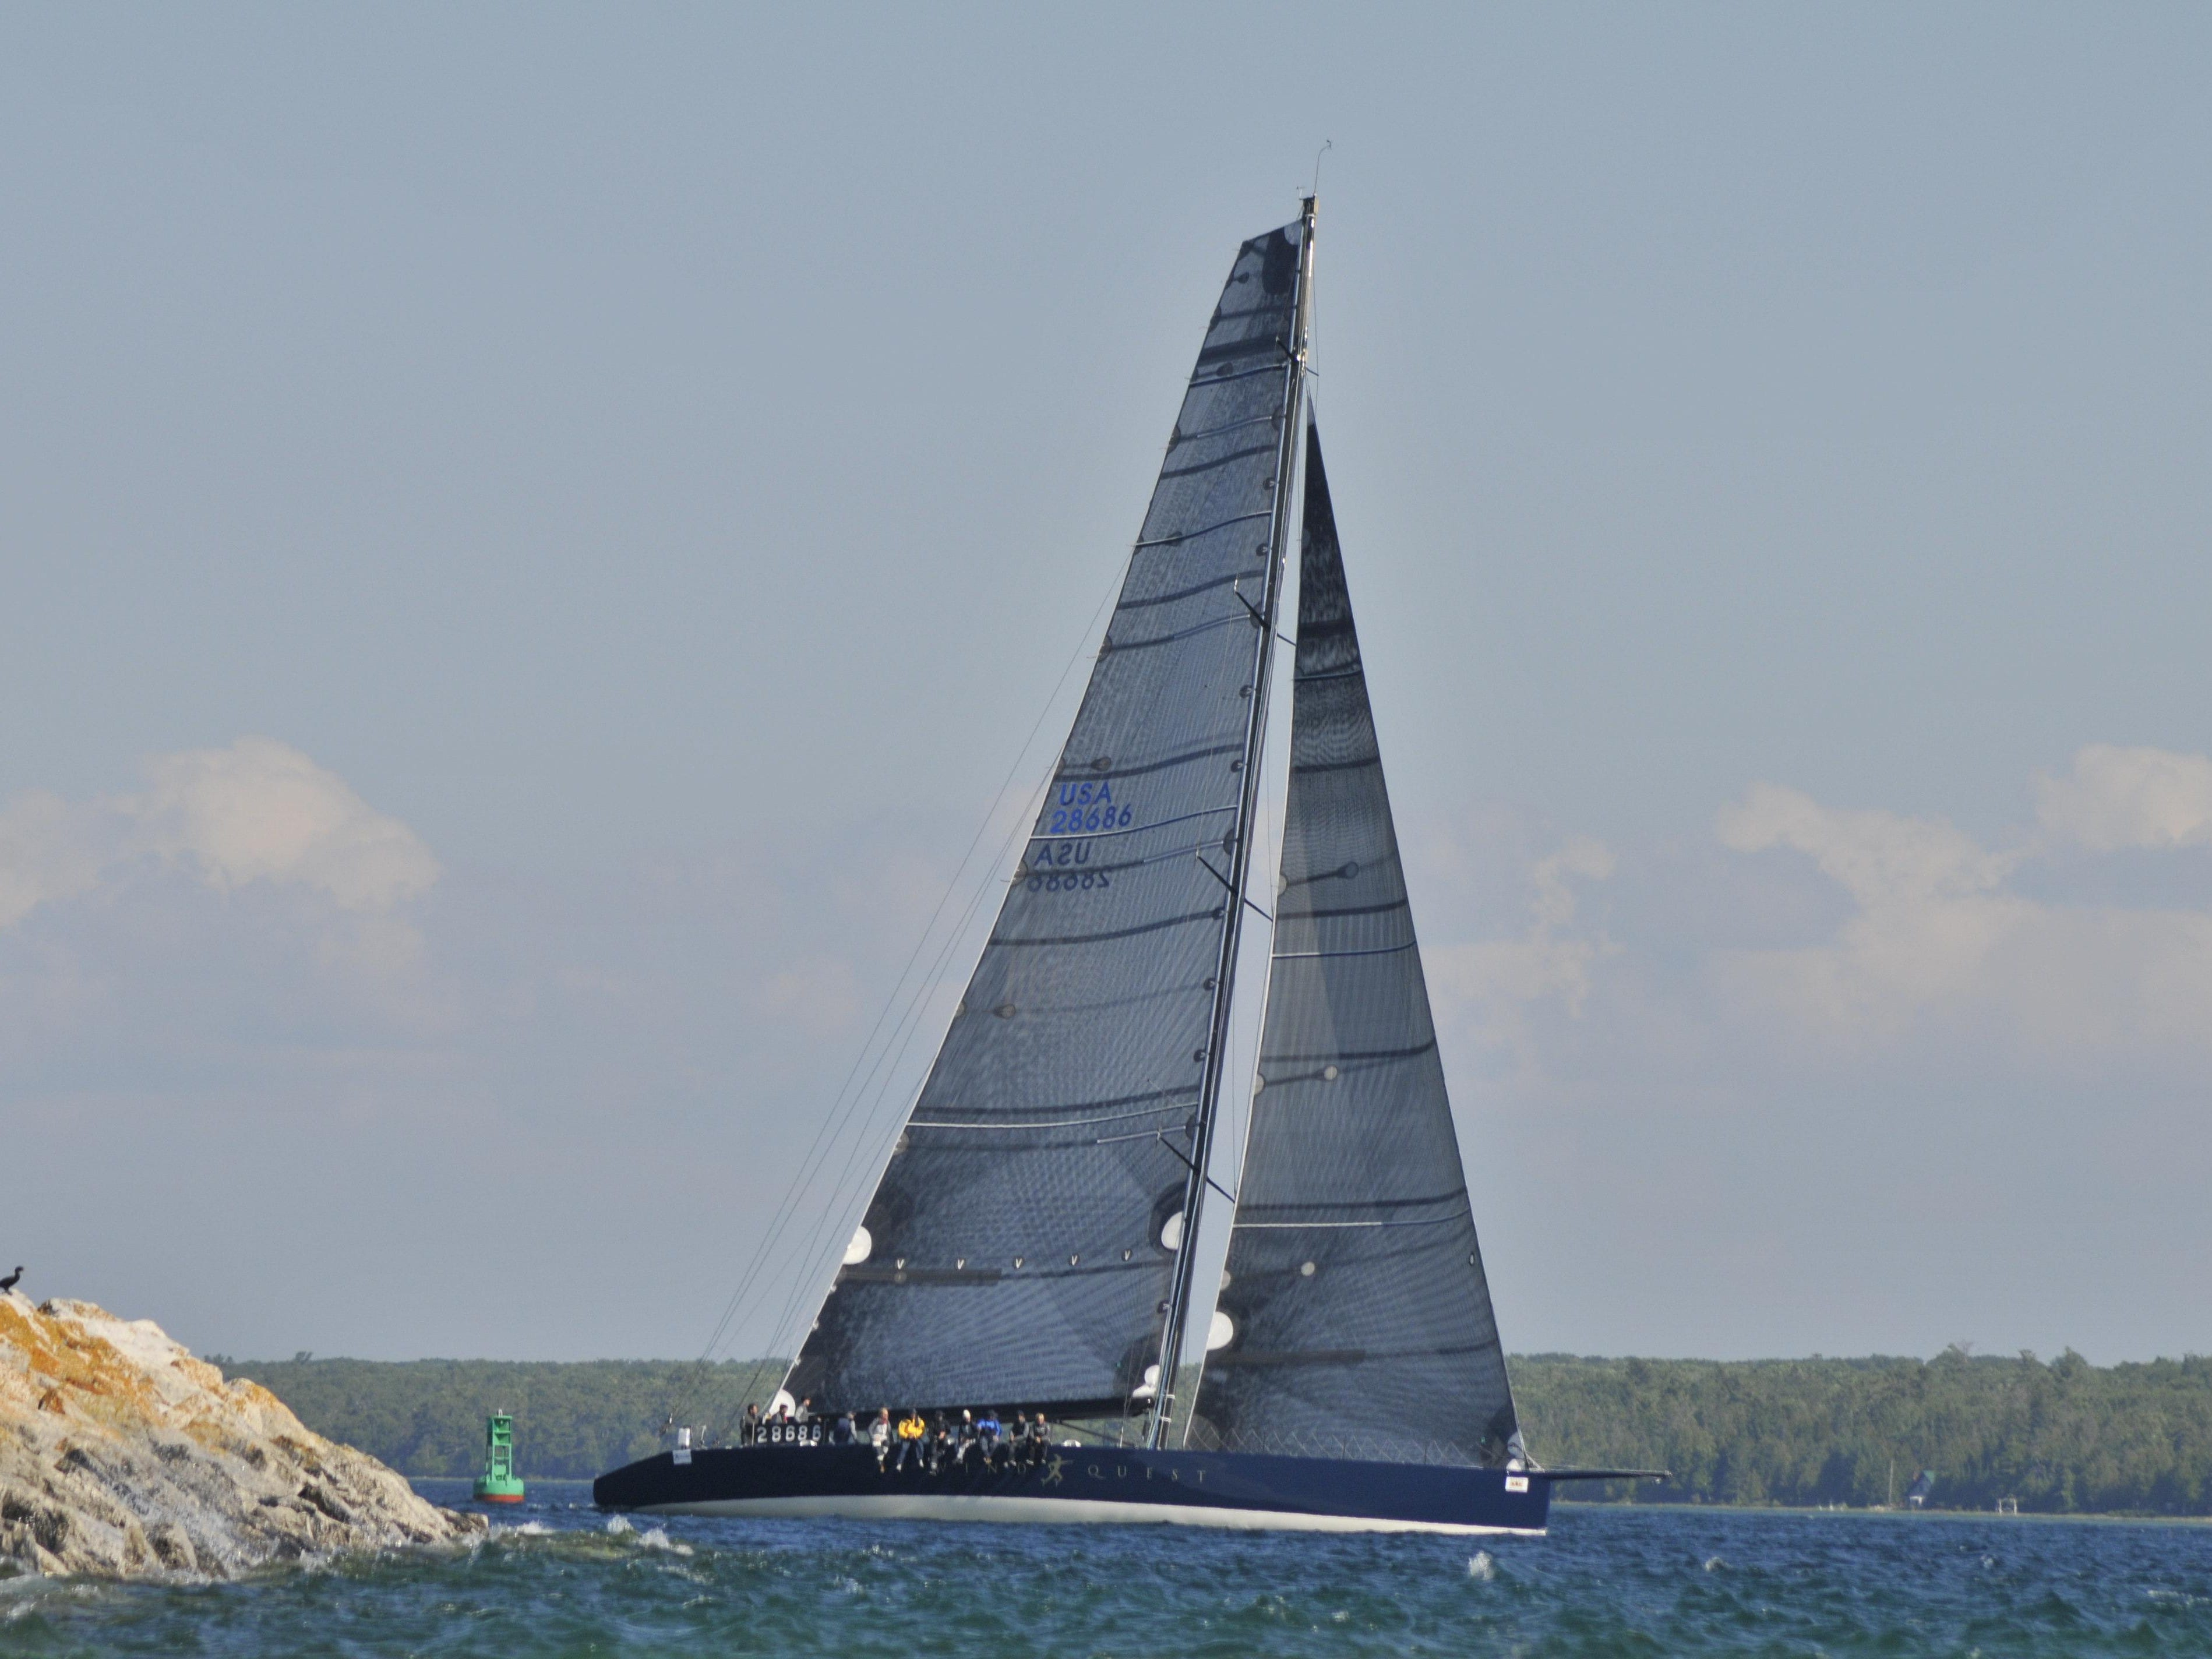 Windquest was the first boat to Mackinac Island this past year.